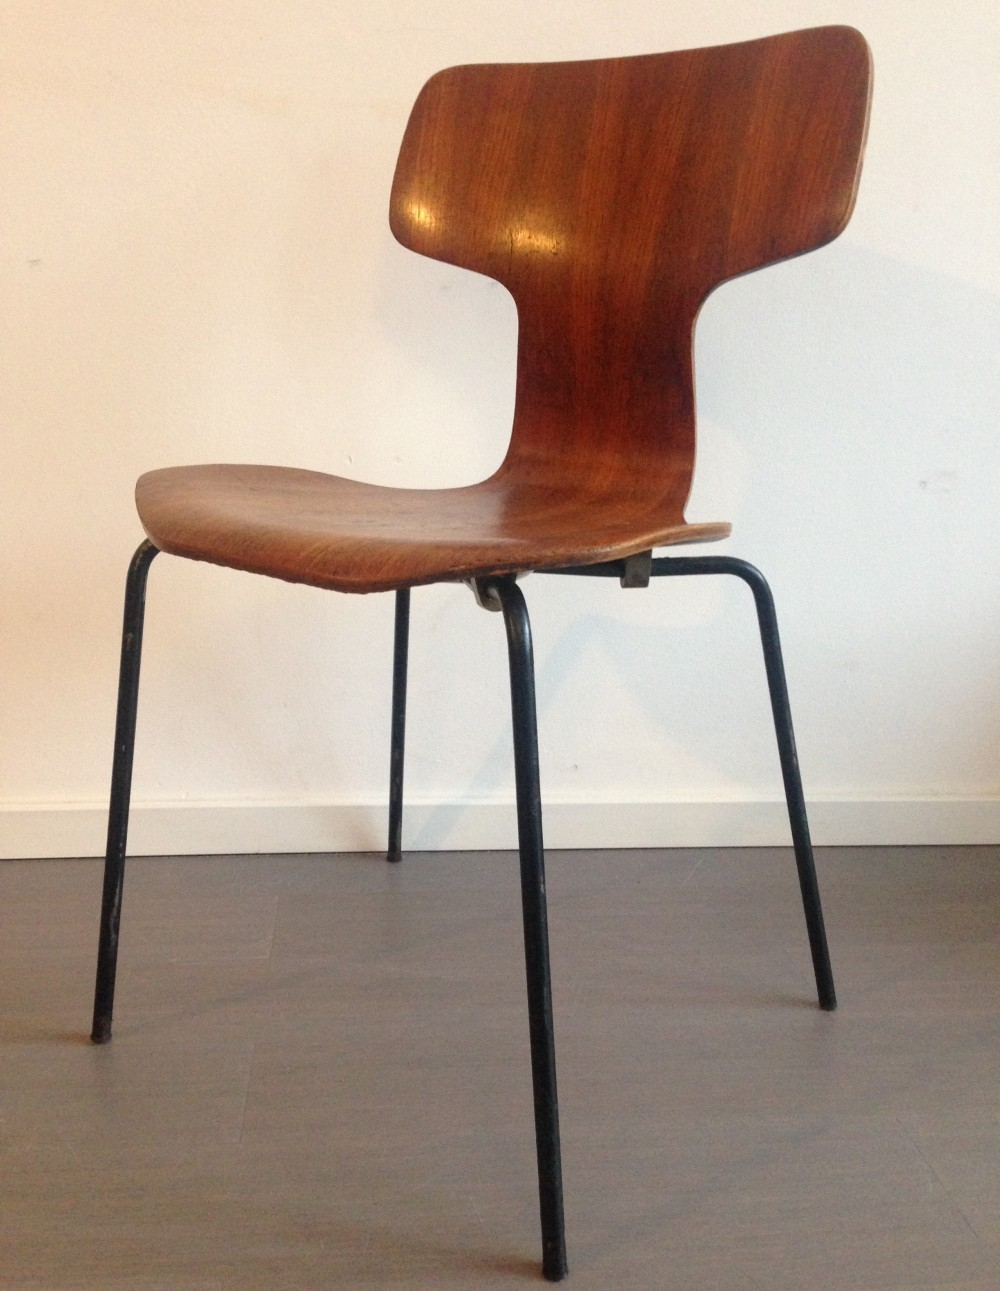 Set of 4 3103 Hammer Head dinner chairs from the fifties by Arne Jacobsen for Fritz Hansen